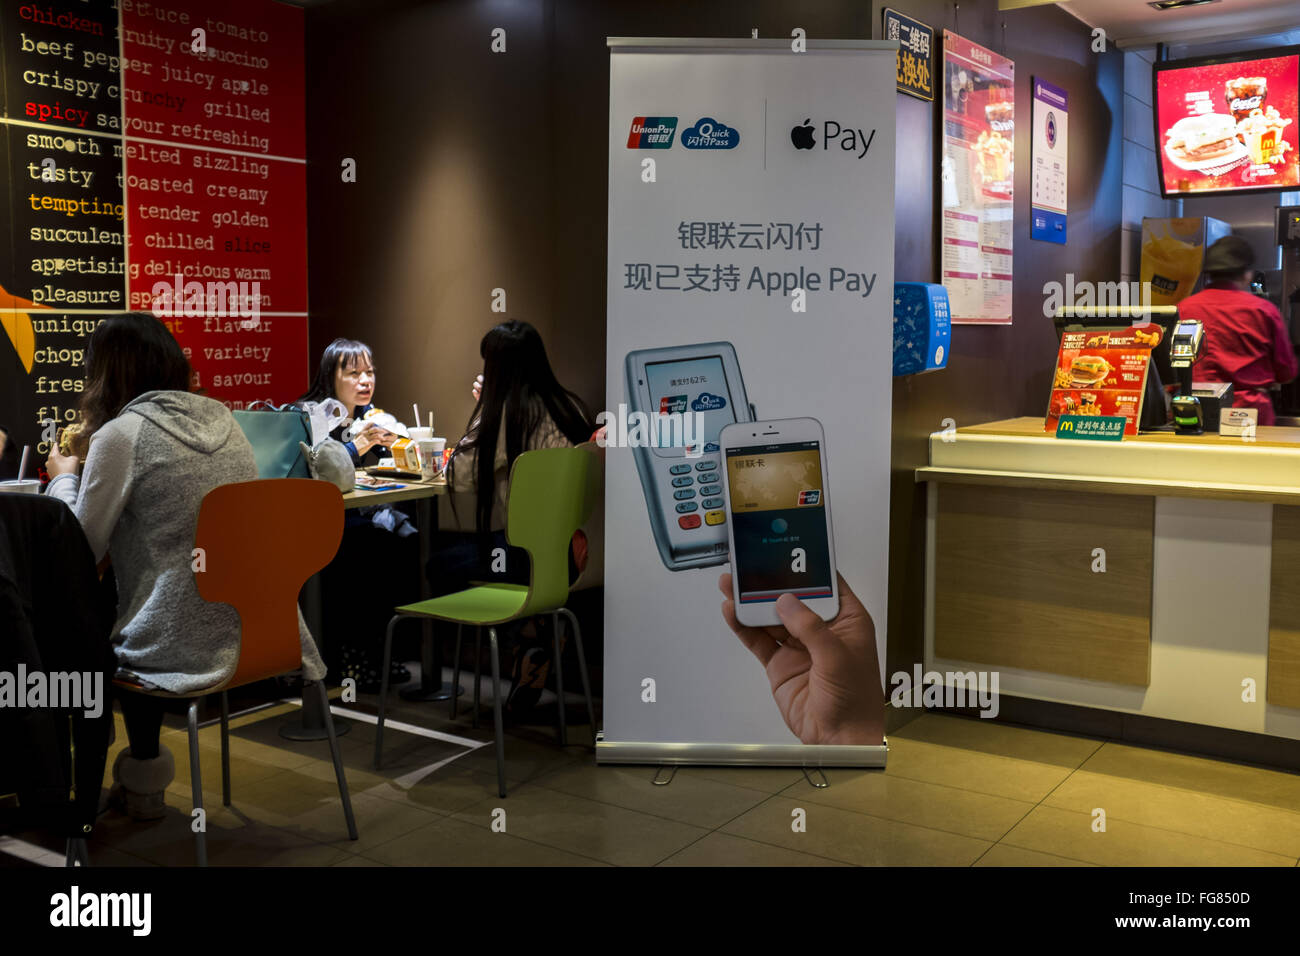 China  18th February, 2016  Apple Pay service runs onlie at today in